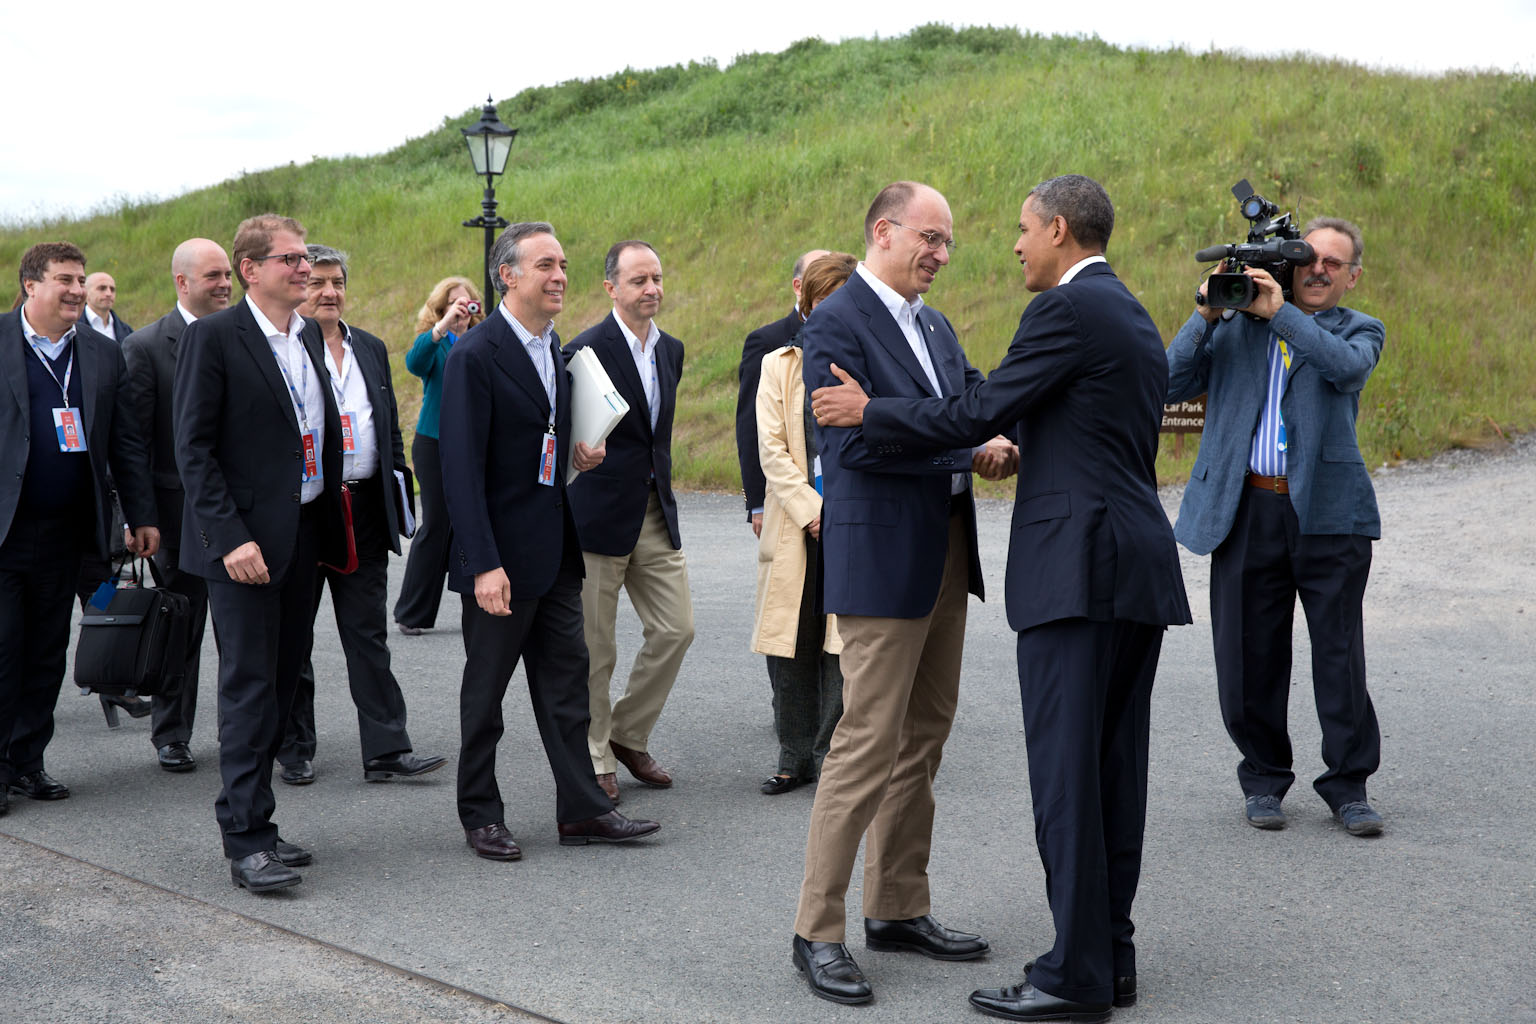 President Barack Obama greets Italy Prime Minister Enrico Letta at the G8 Summit in Lough Erne